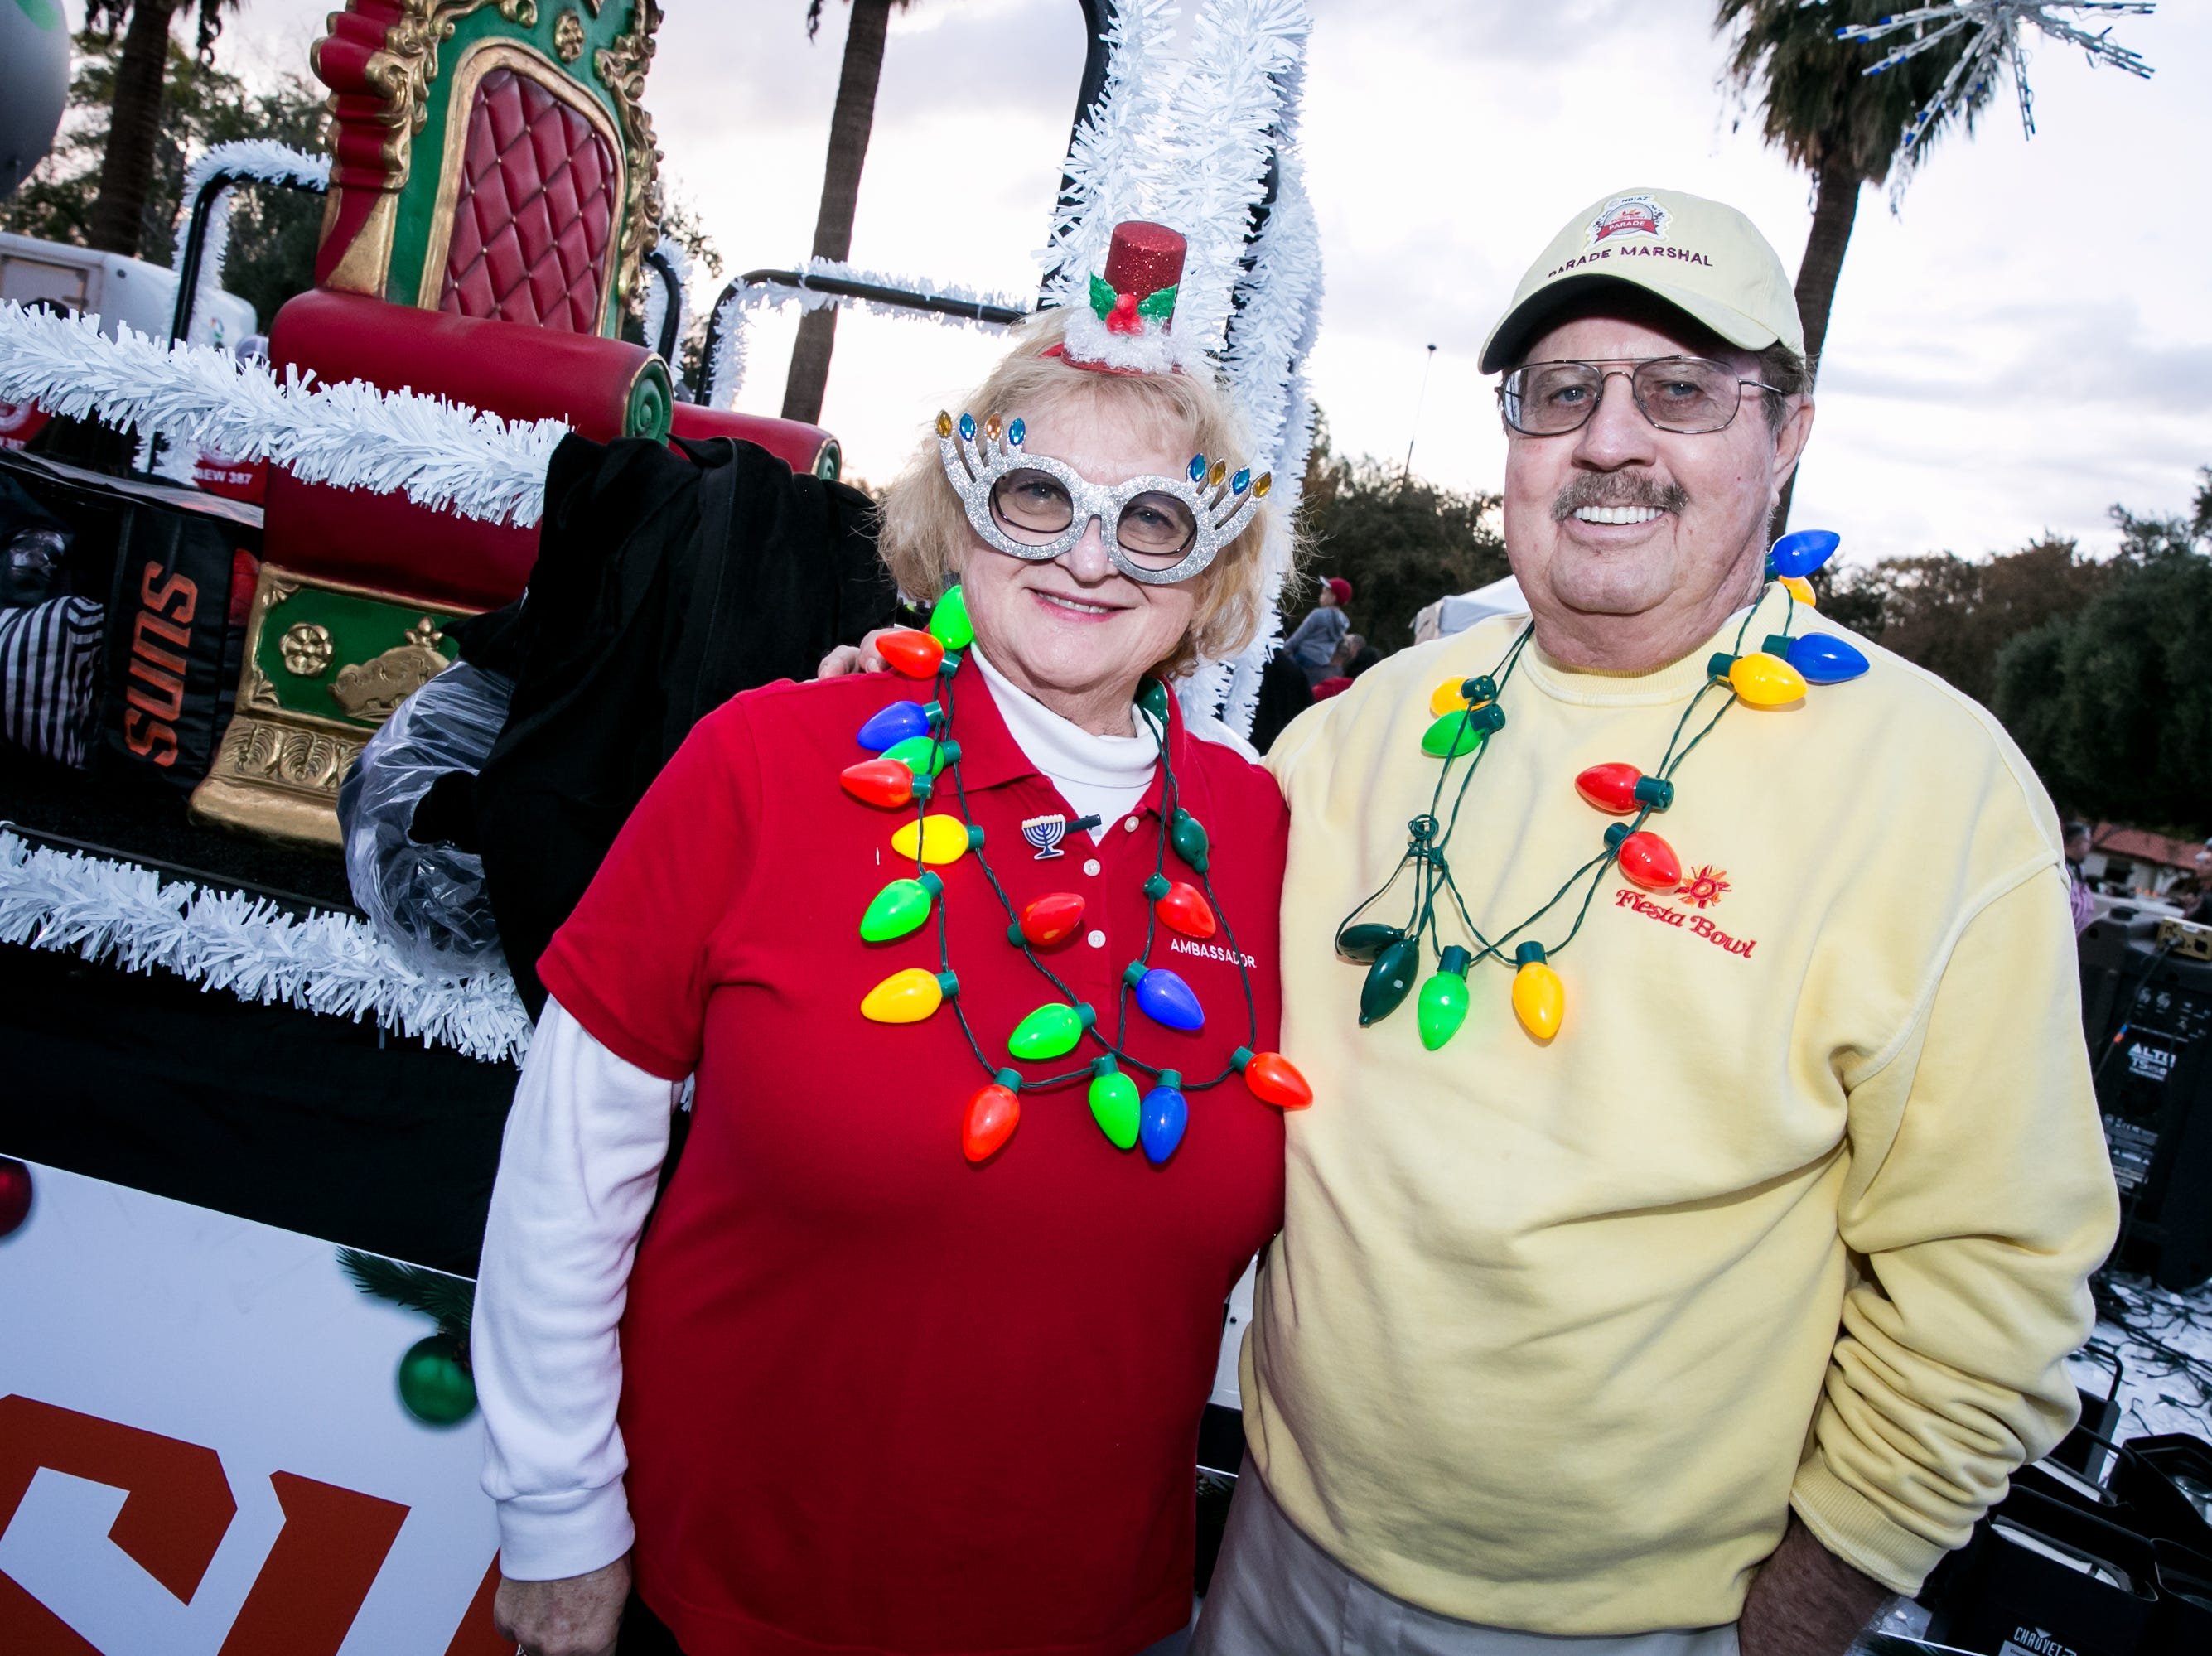 She had impeccable taste in Hanukkah glasses during the Electric Light Parade in Central Phoenix on Saturday, December 1, 2018.